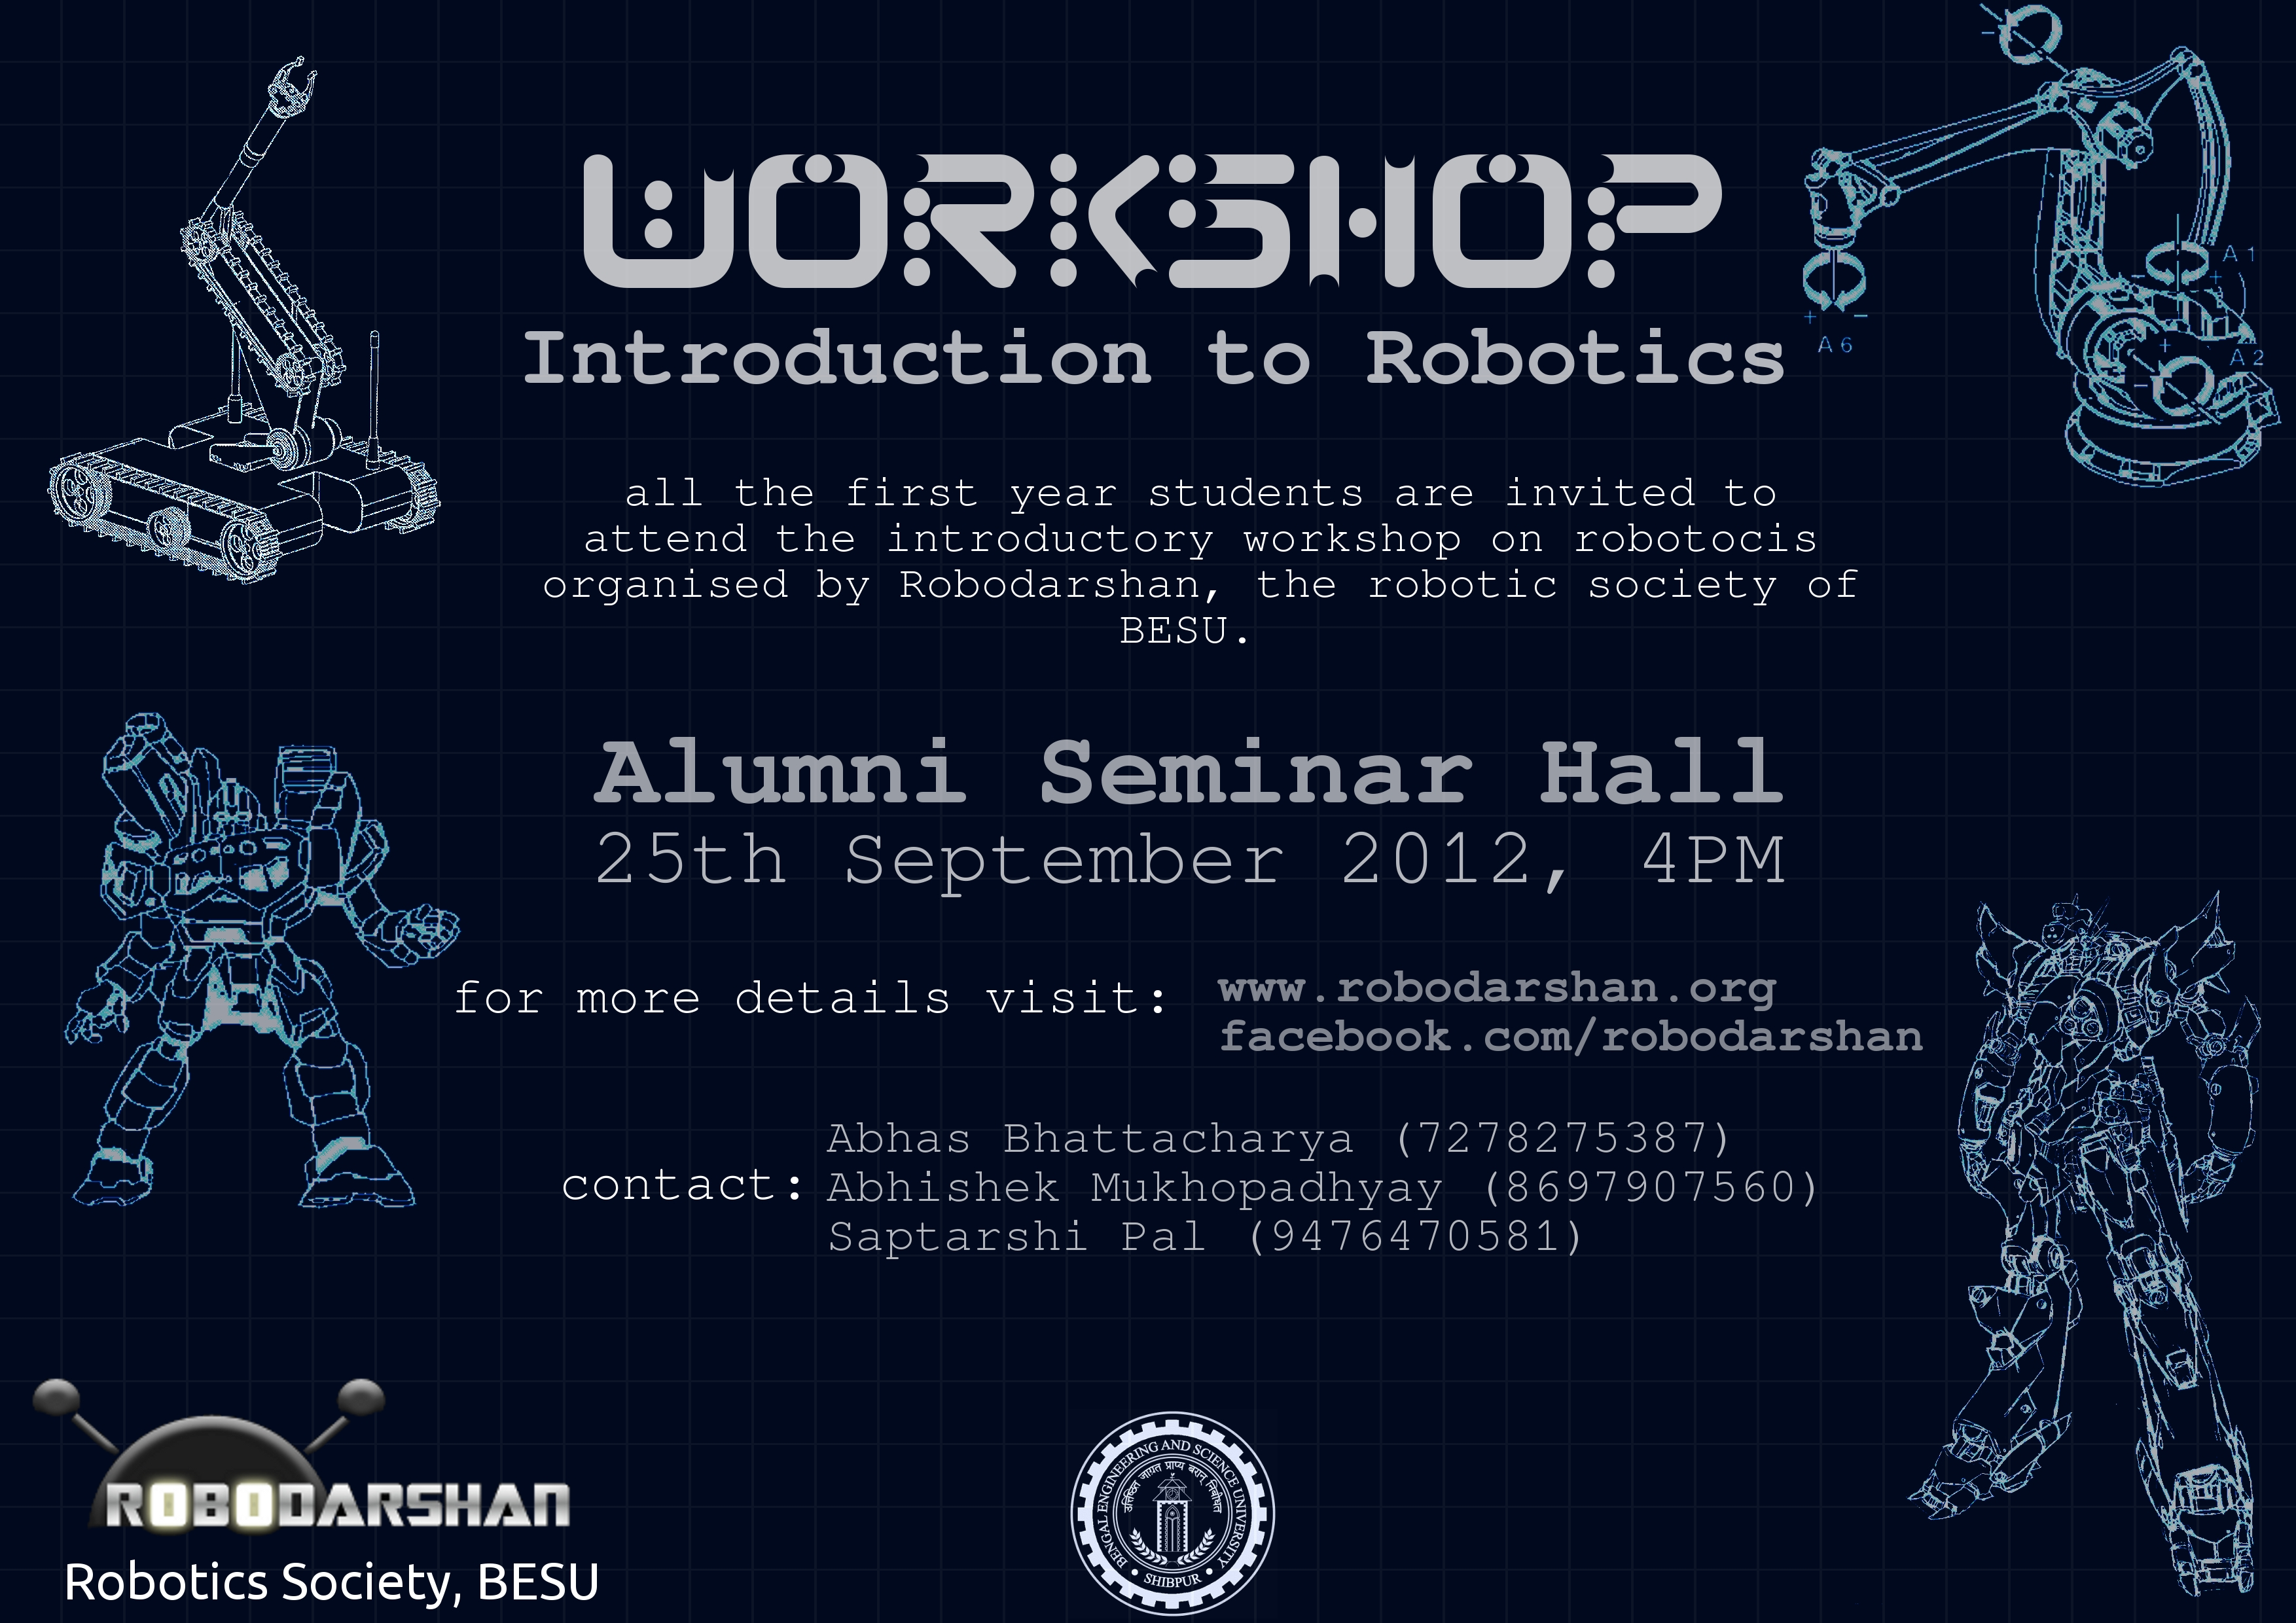 Toys In The Attic Poster For Robodarshan Workshop